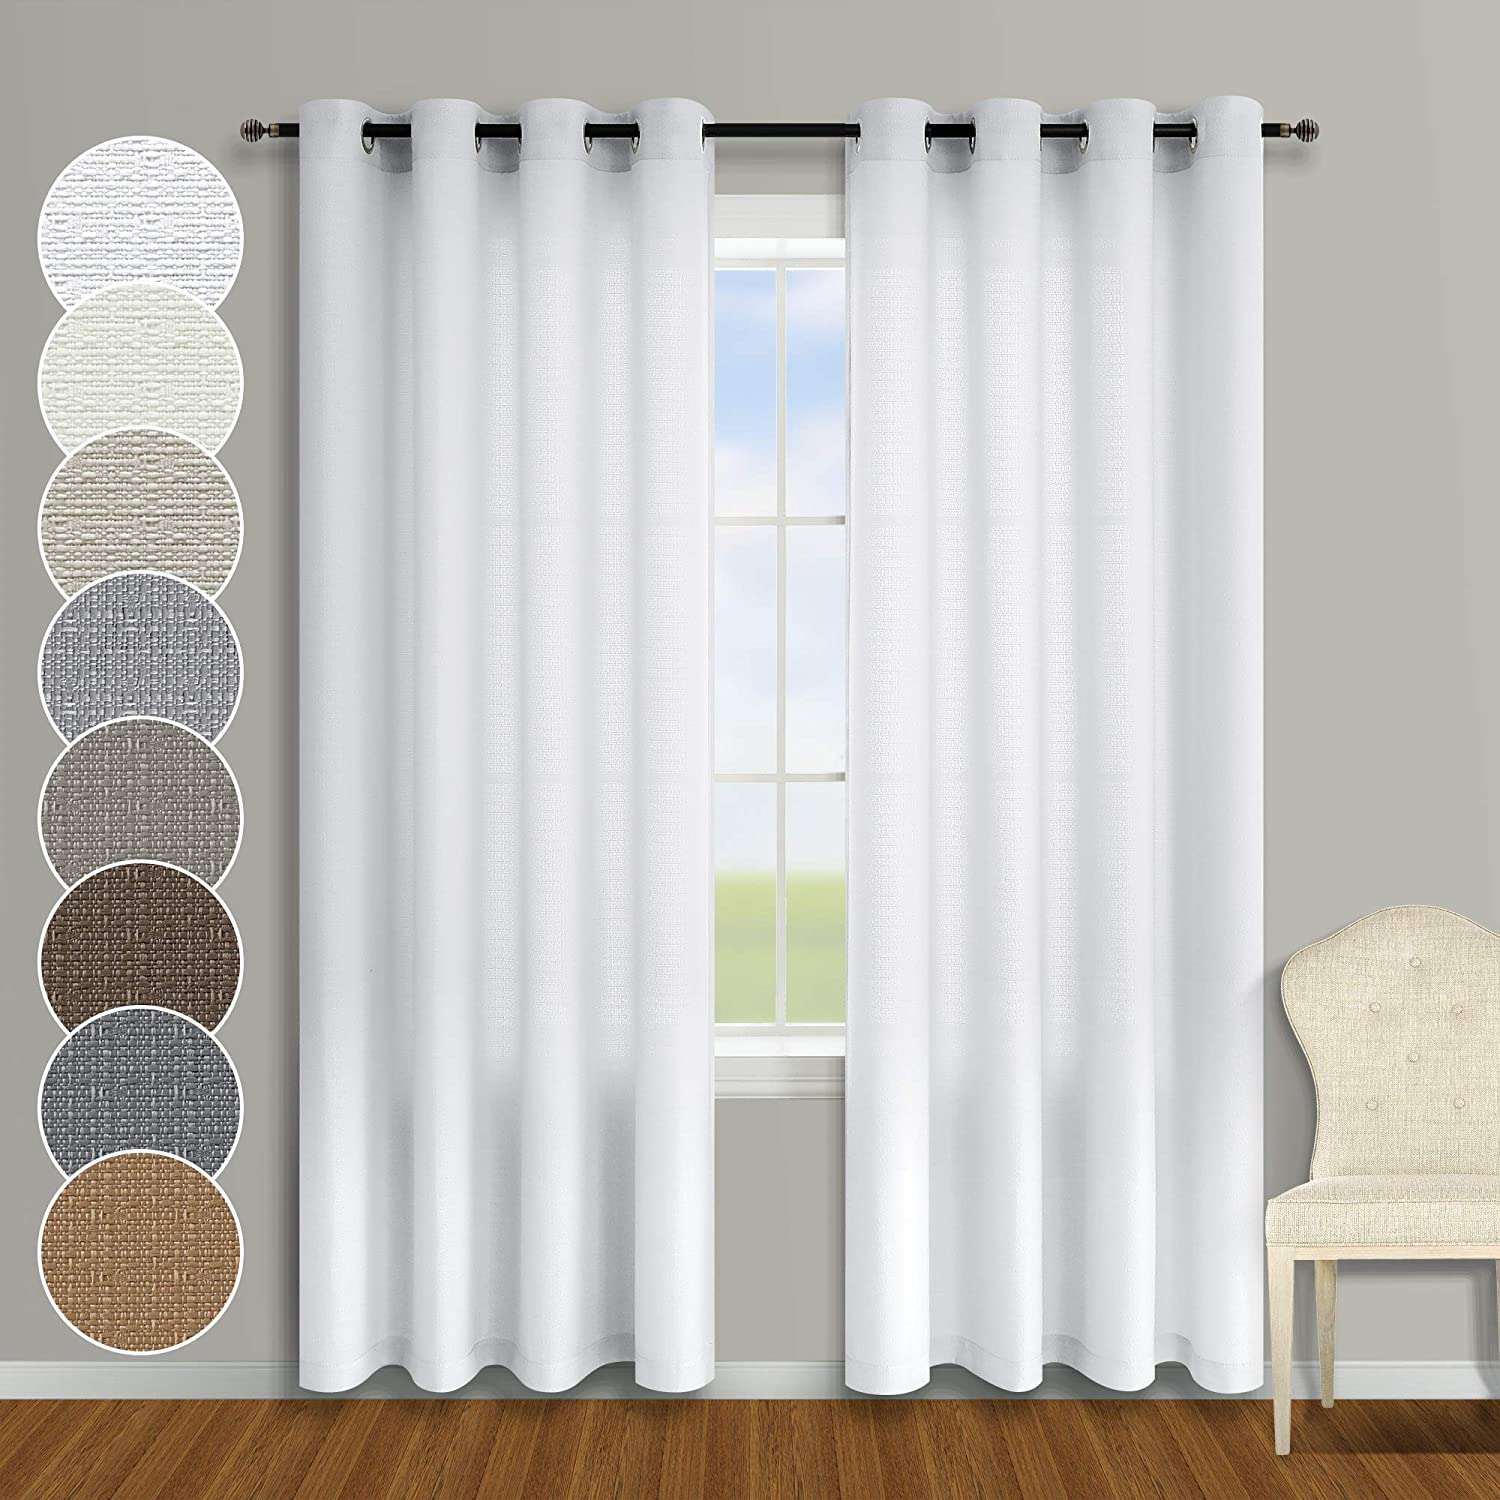 Semi Sheer White Curtains 95 Inches Long for Shabby Chic Decor 2 Panels Set Grommet Farmhouse Light Filtering Window Covering Faux Linen Cotton Curtains for Living Room Bedroom Plain White 95 Length